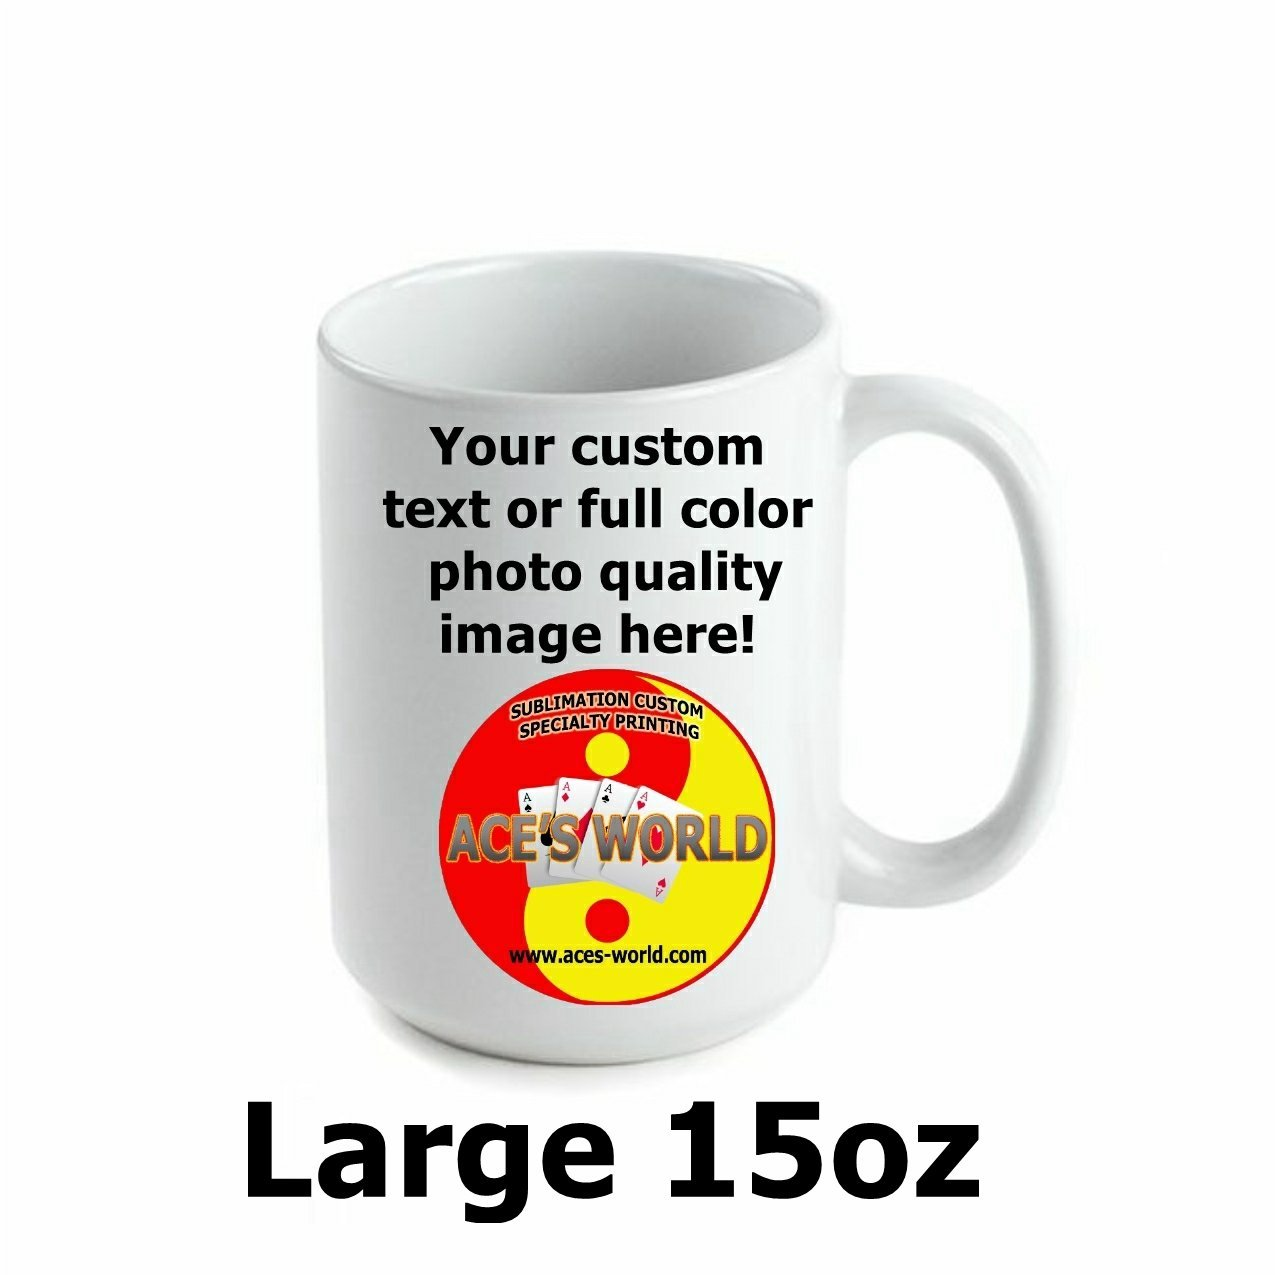 15oz Ceramic Coffee Mug Custom Image FREE SHIPPING